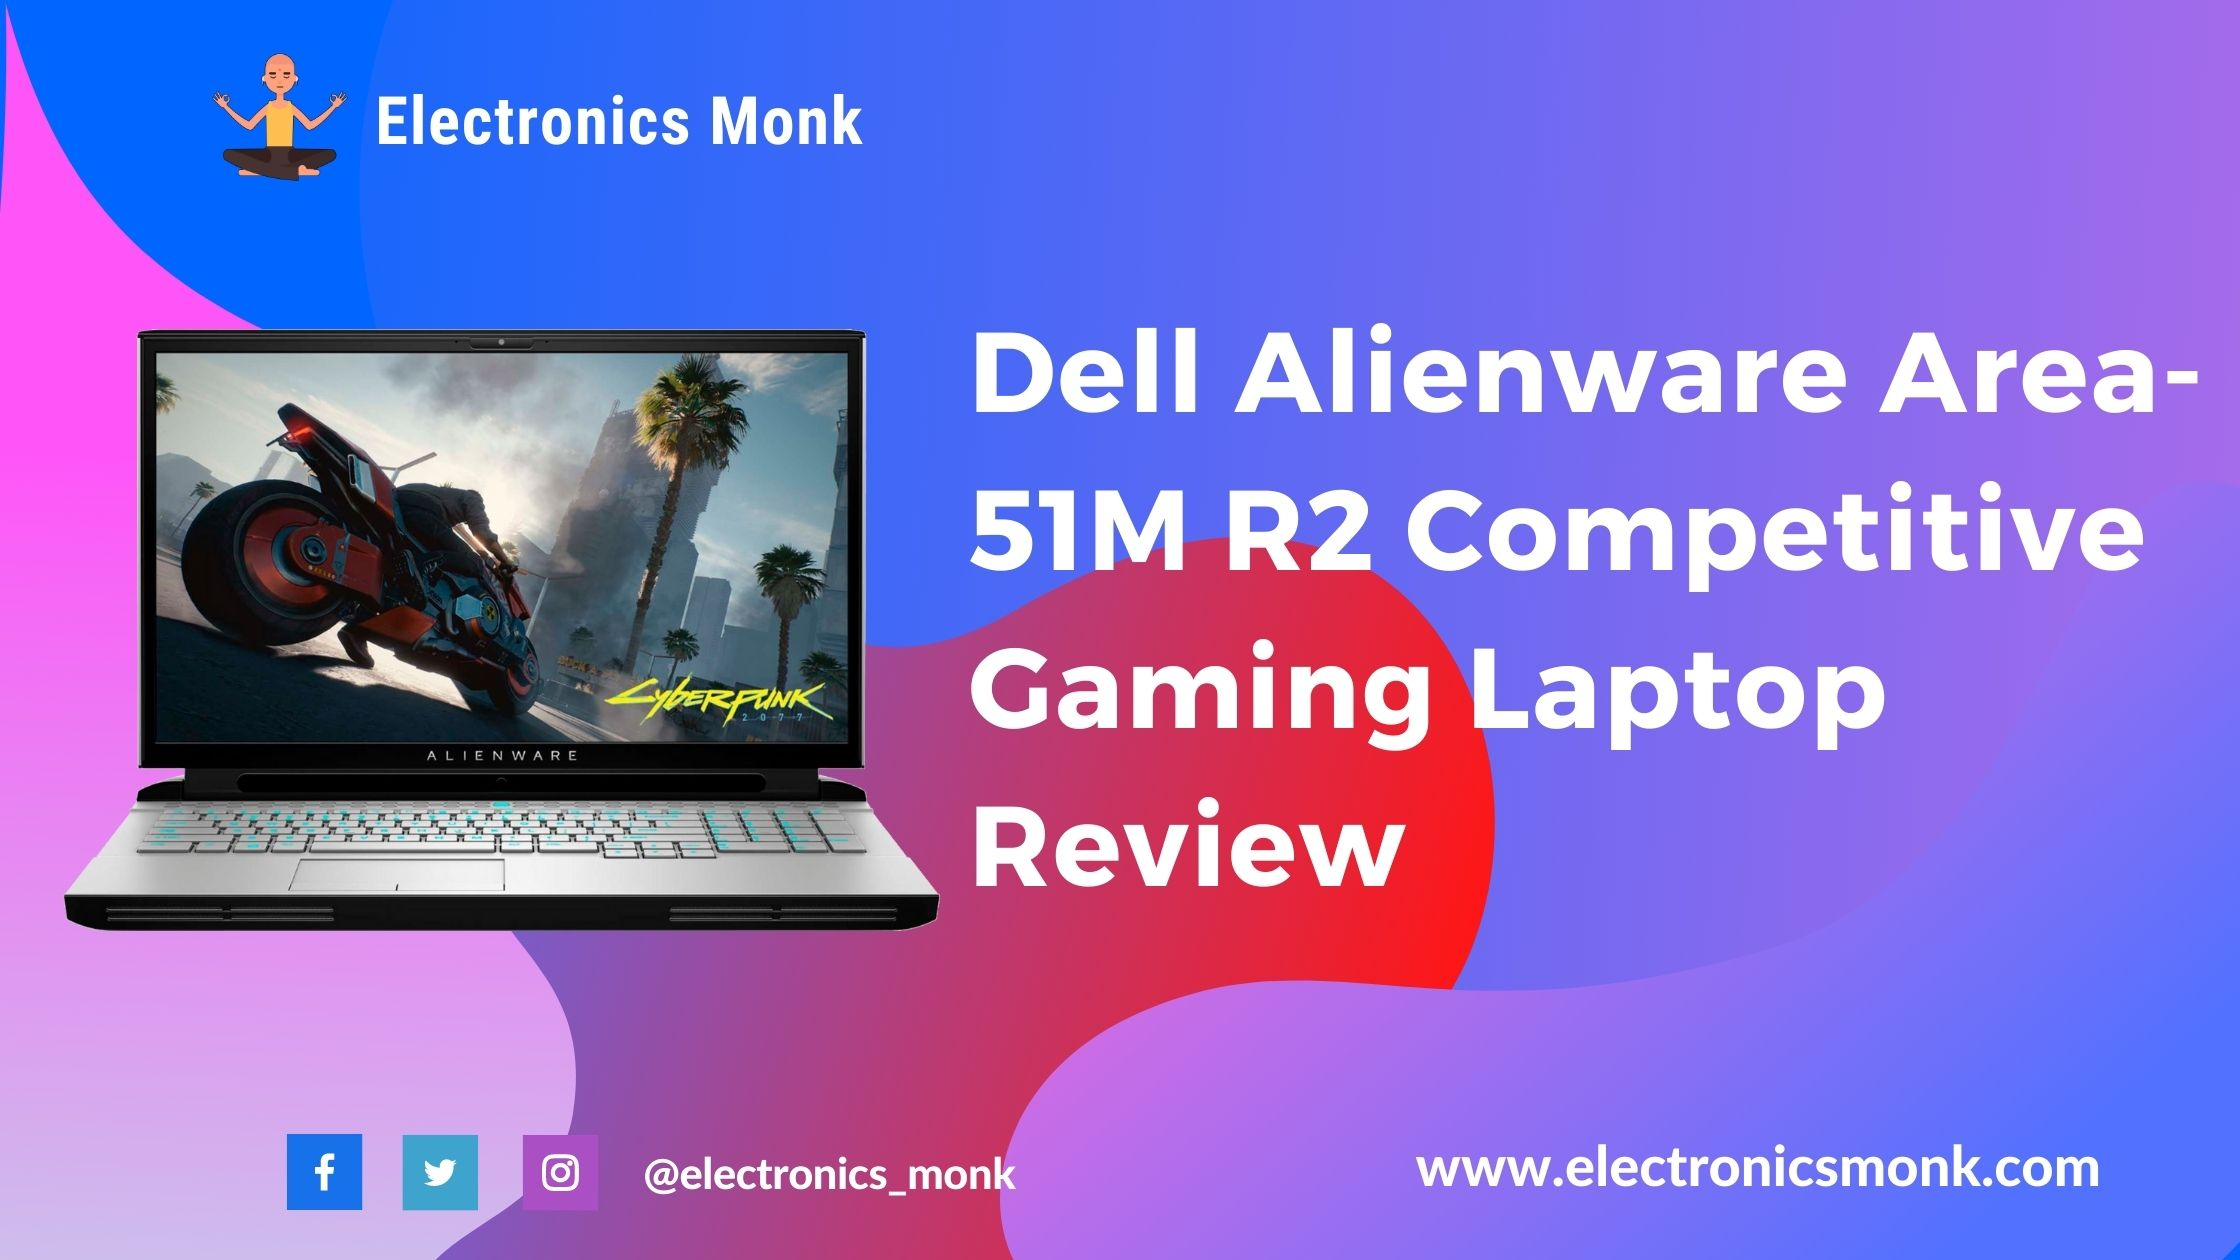 Dell Alienware Area-51M R2 Competitive Gaming Laptop Review